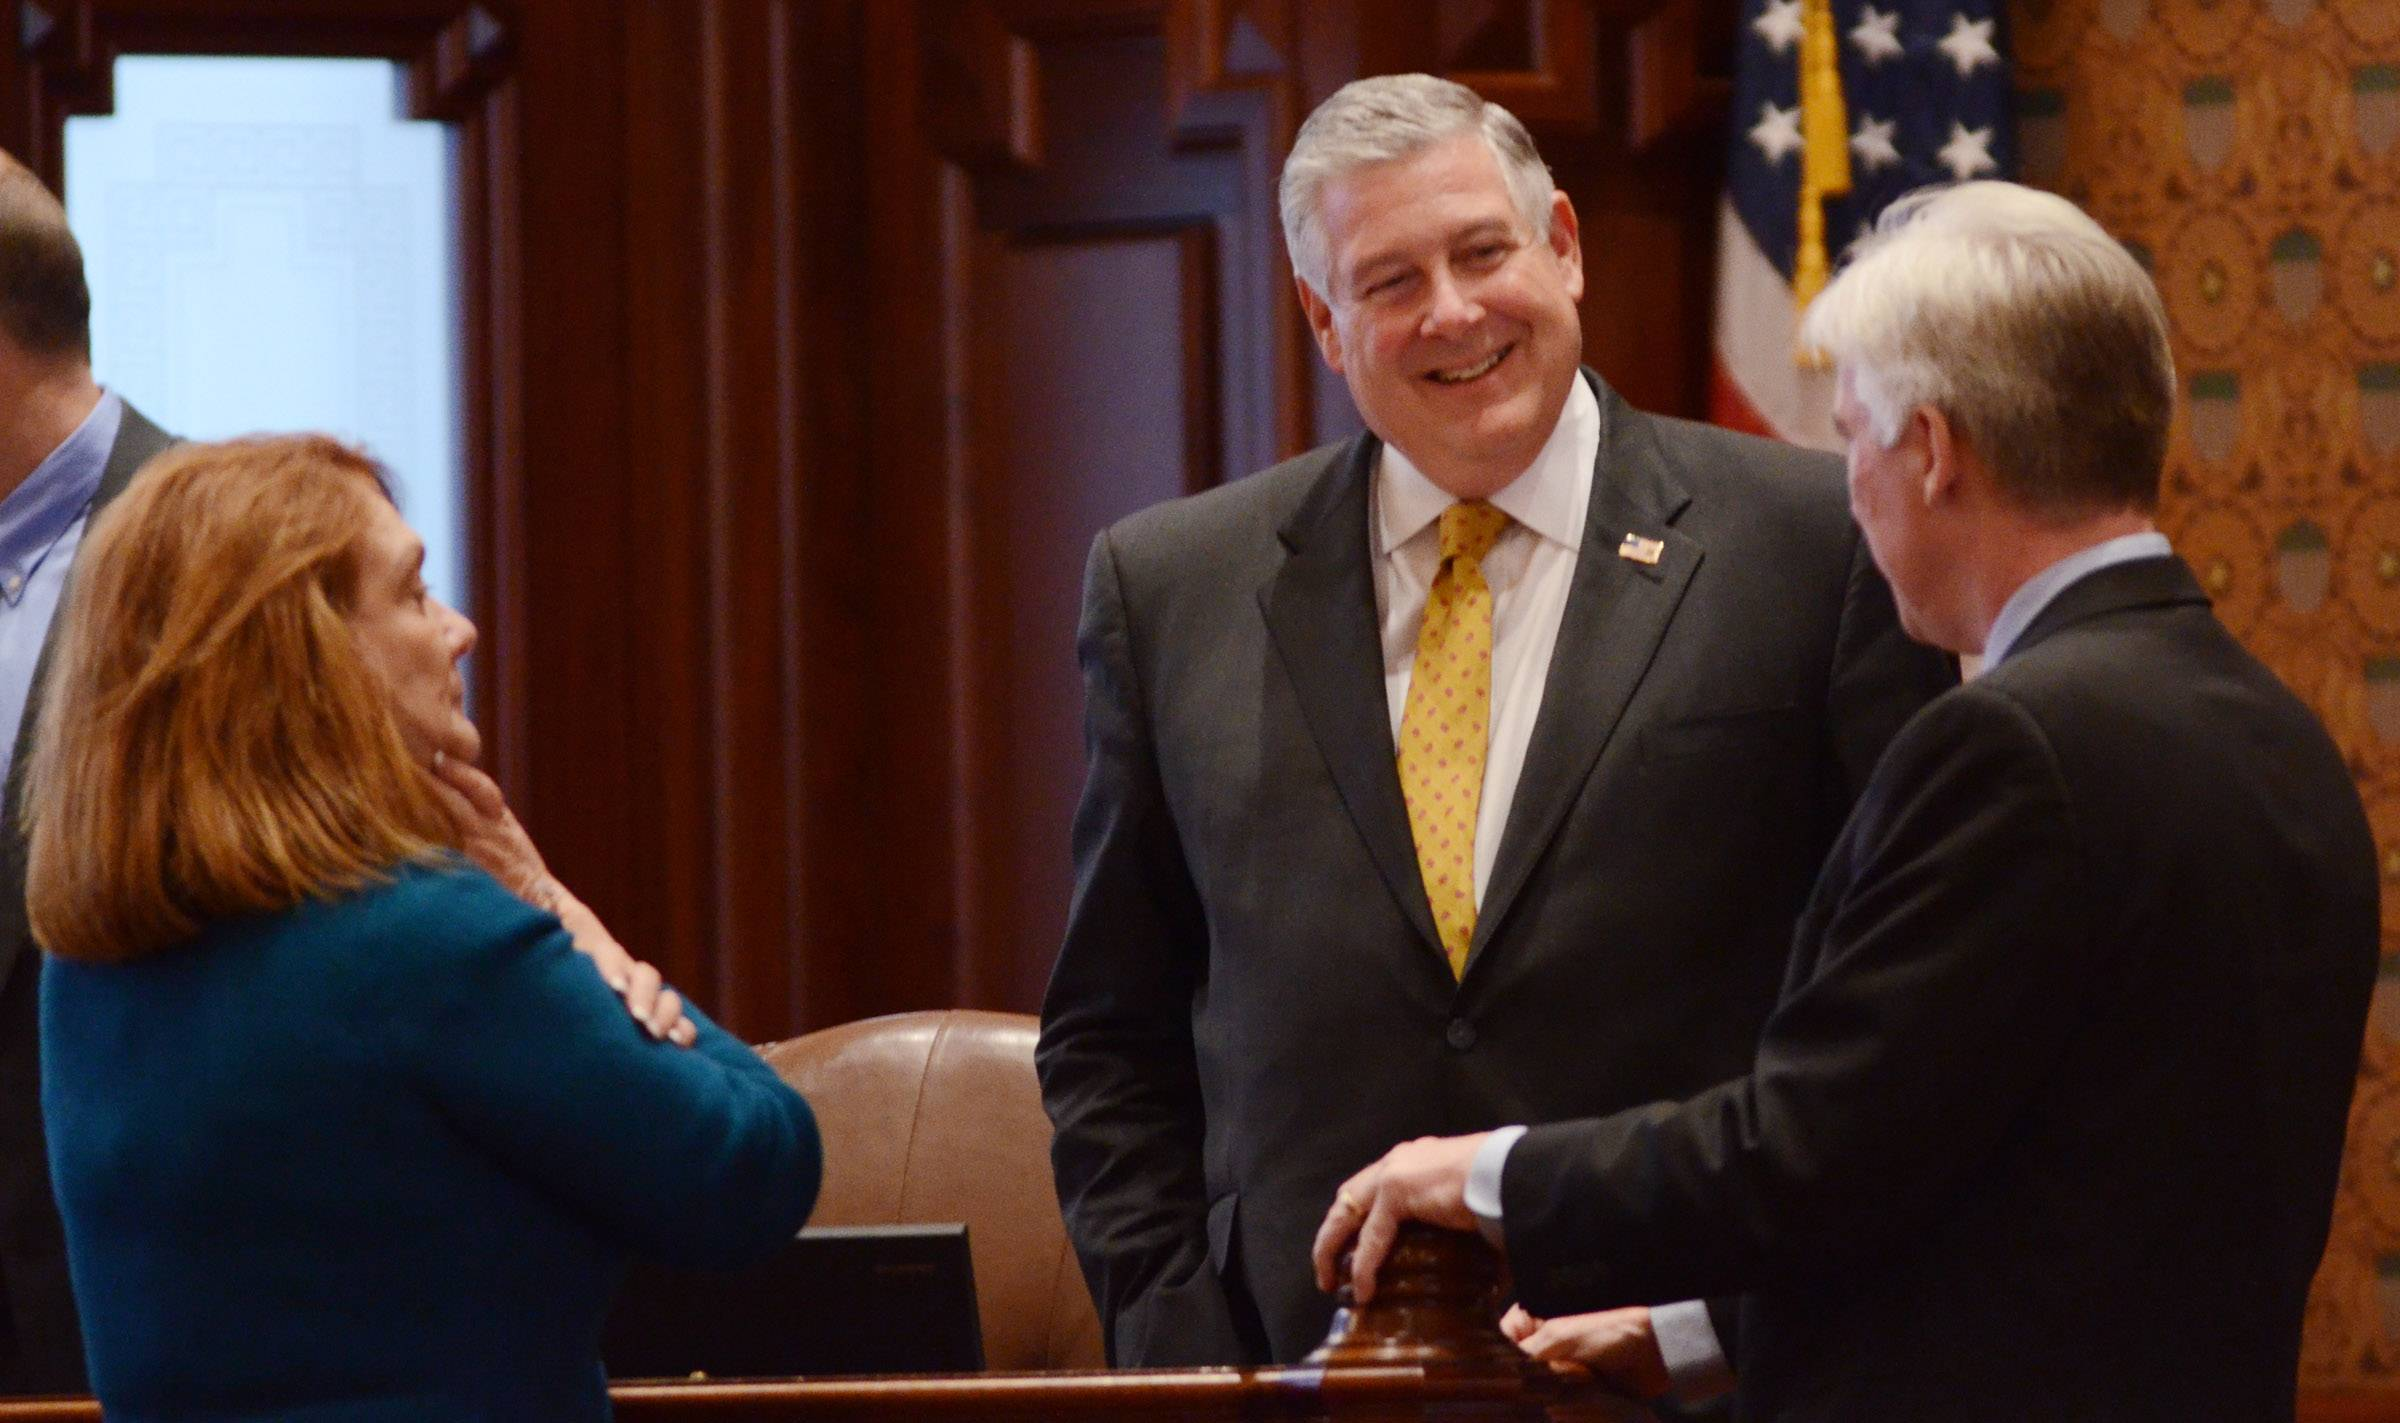 Republican Kirk Dillard made official his resignation from the Illinois Senate as he moves on to be chairman of the Regional Transportation Authority board.